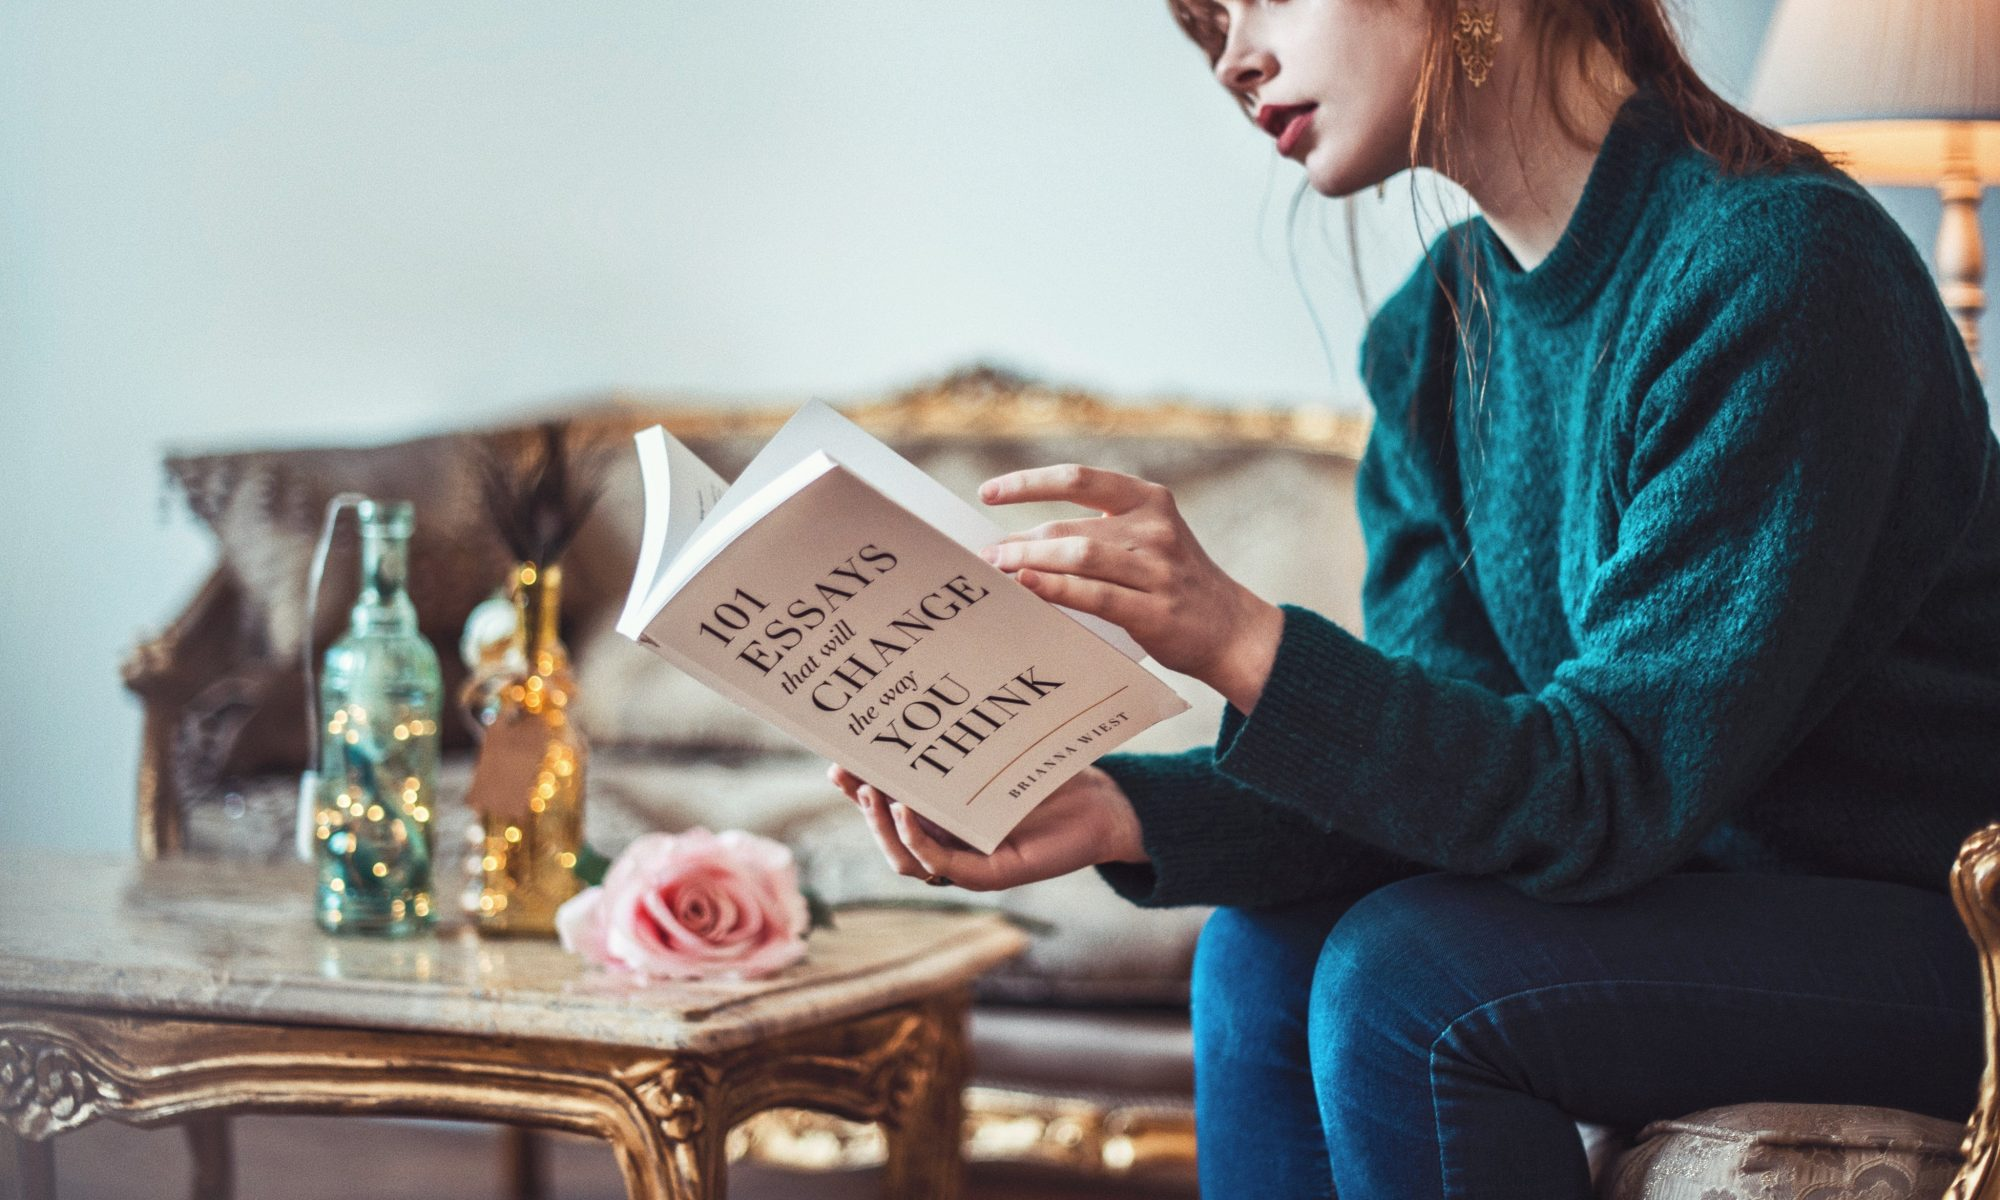 Woman reading a book about essays